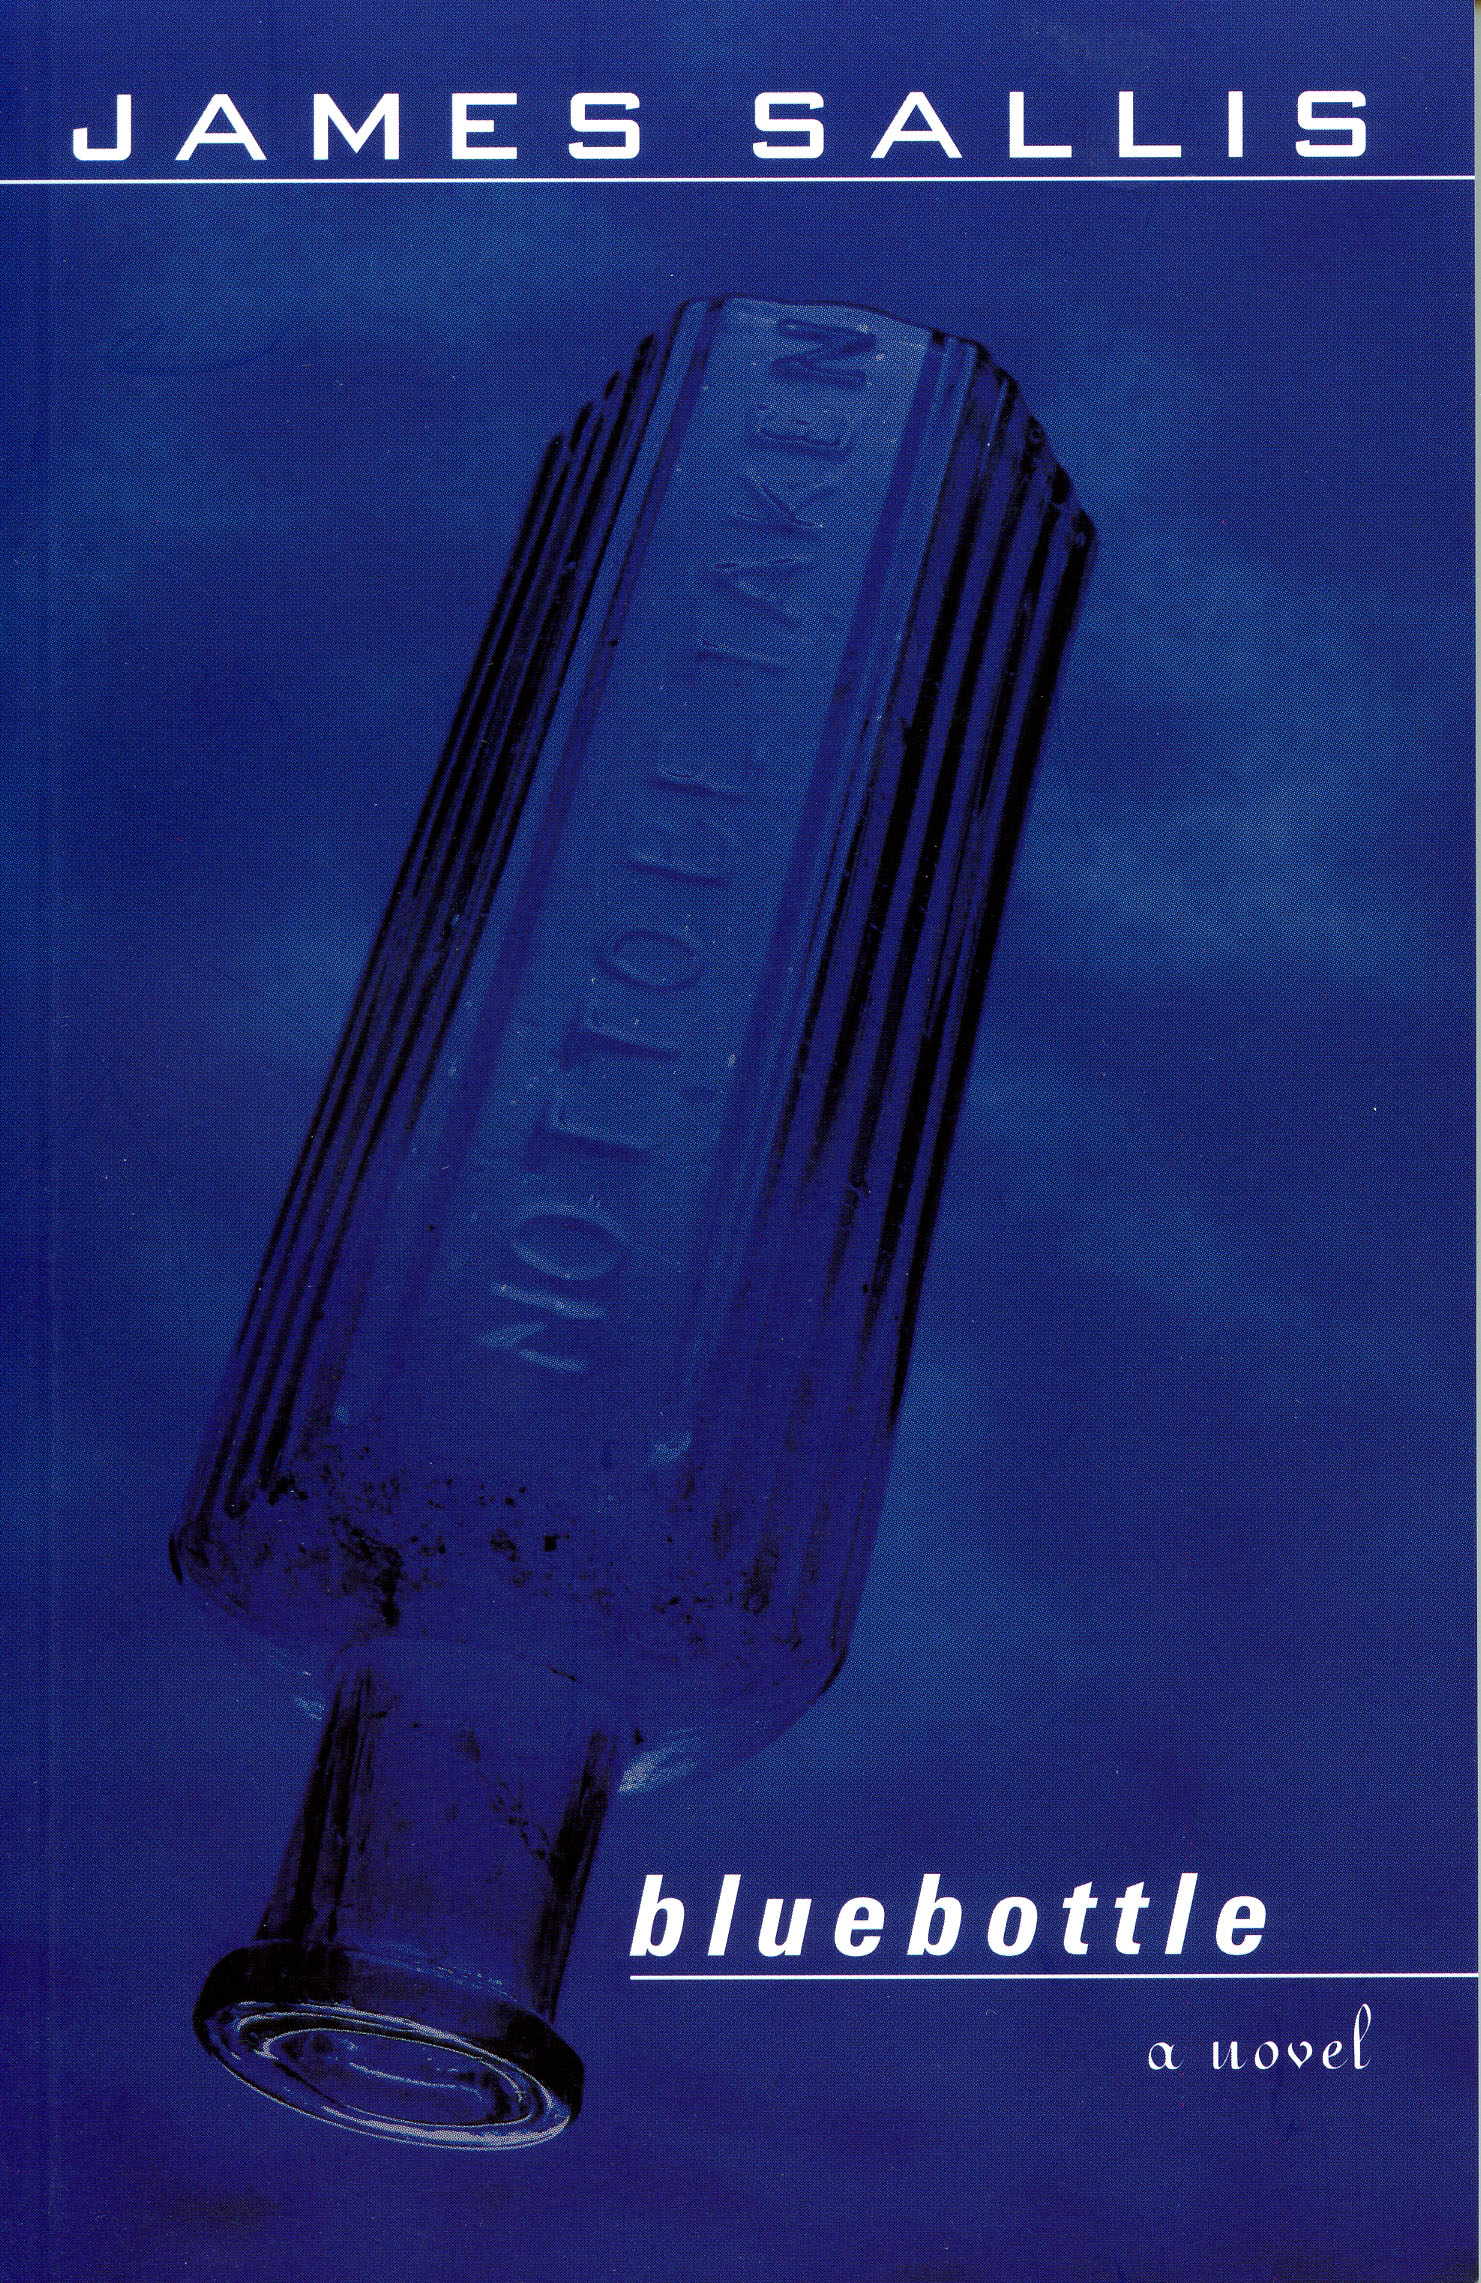 Cover for the US reissue of Bluebottle